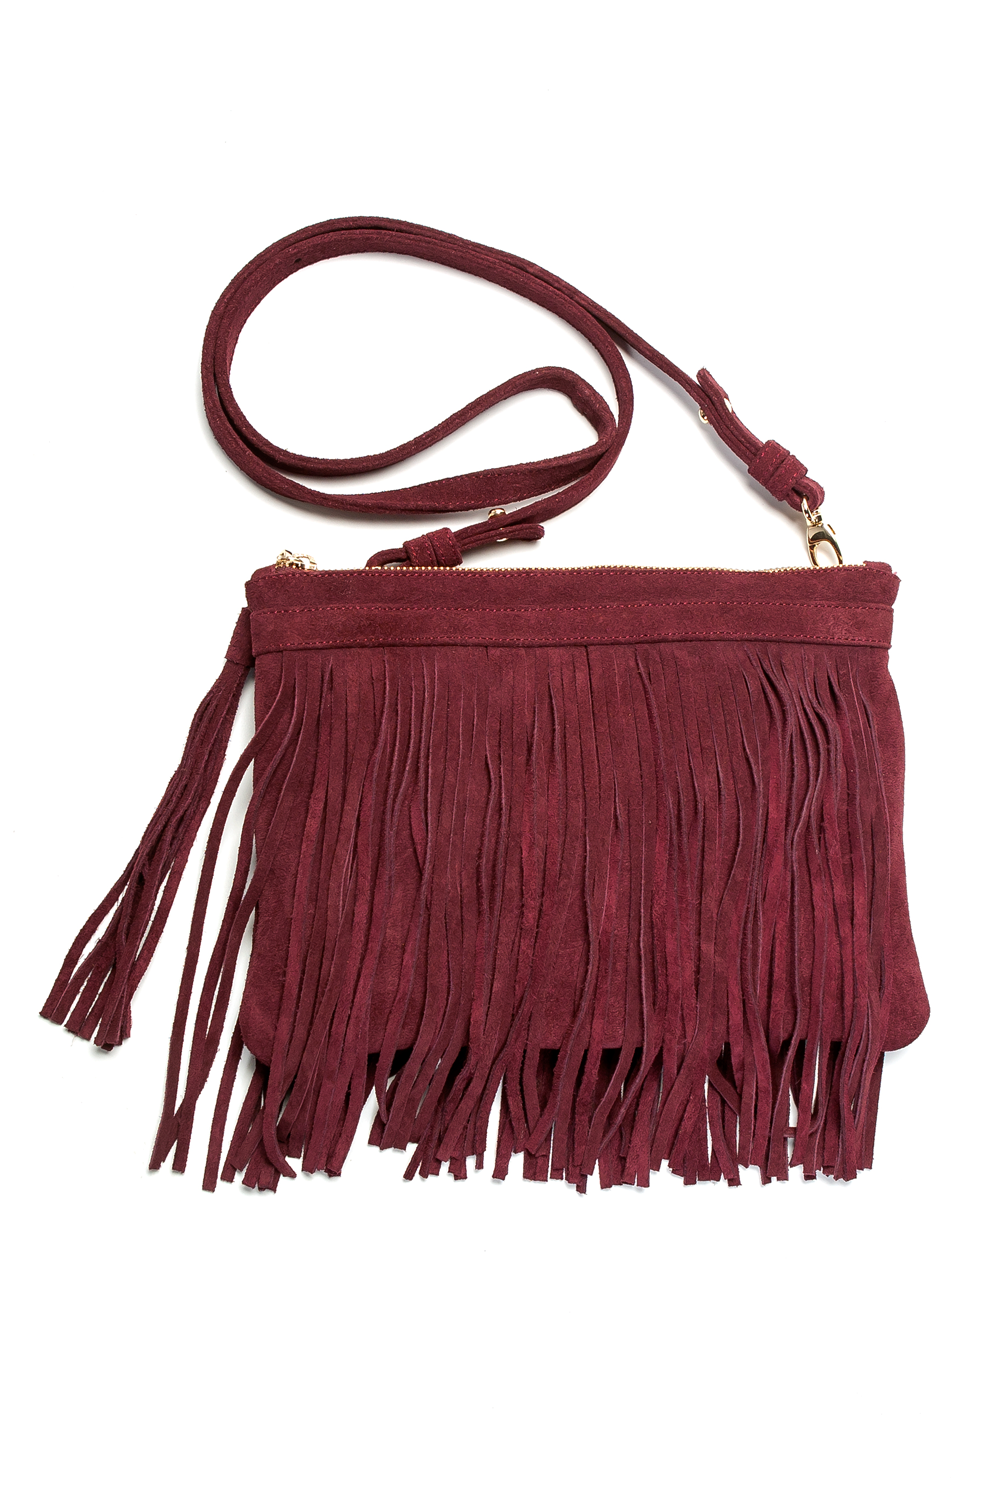 Mel Boteri | 'Mini Taylea' Burgundy Suede Fringed Bag | Detail View